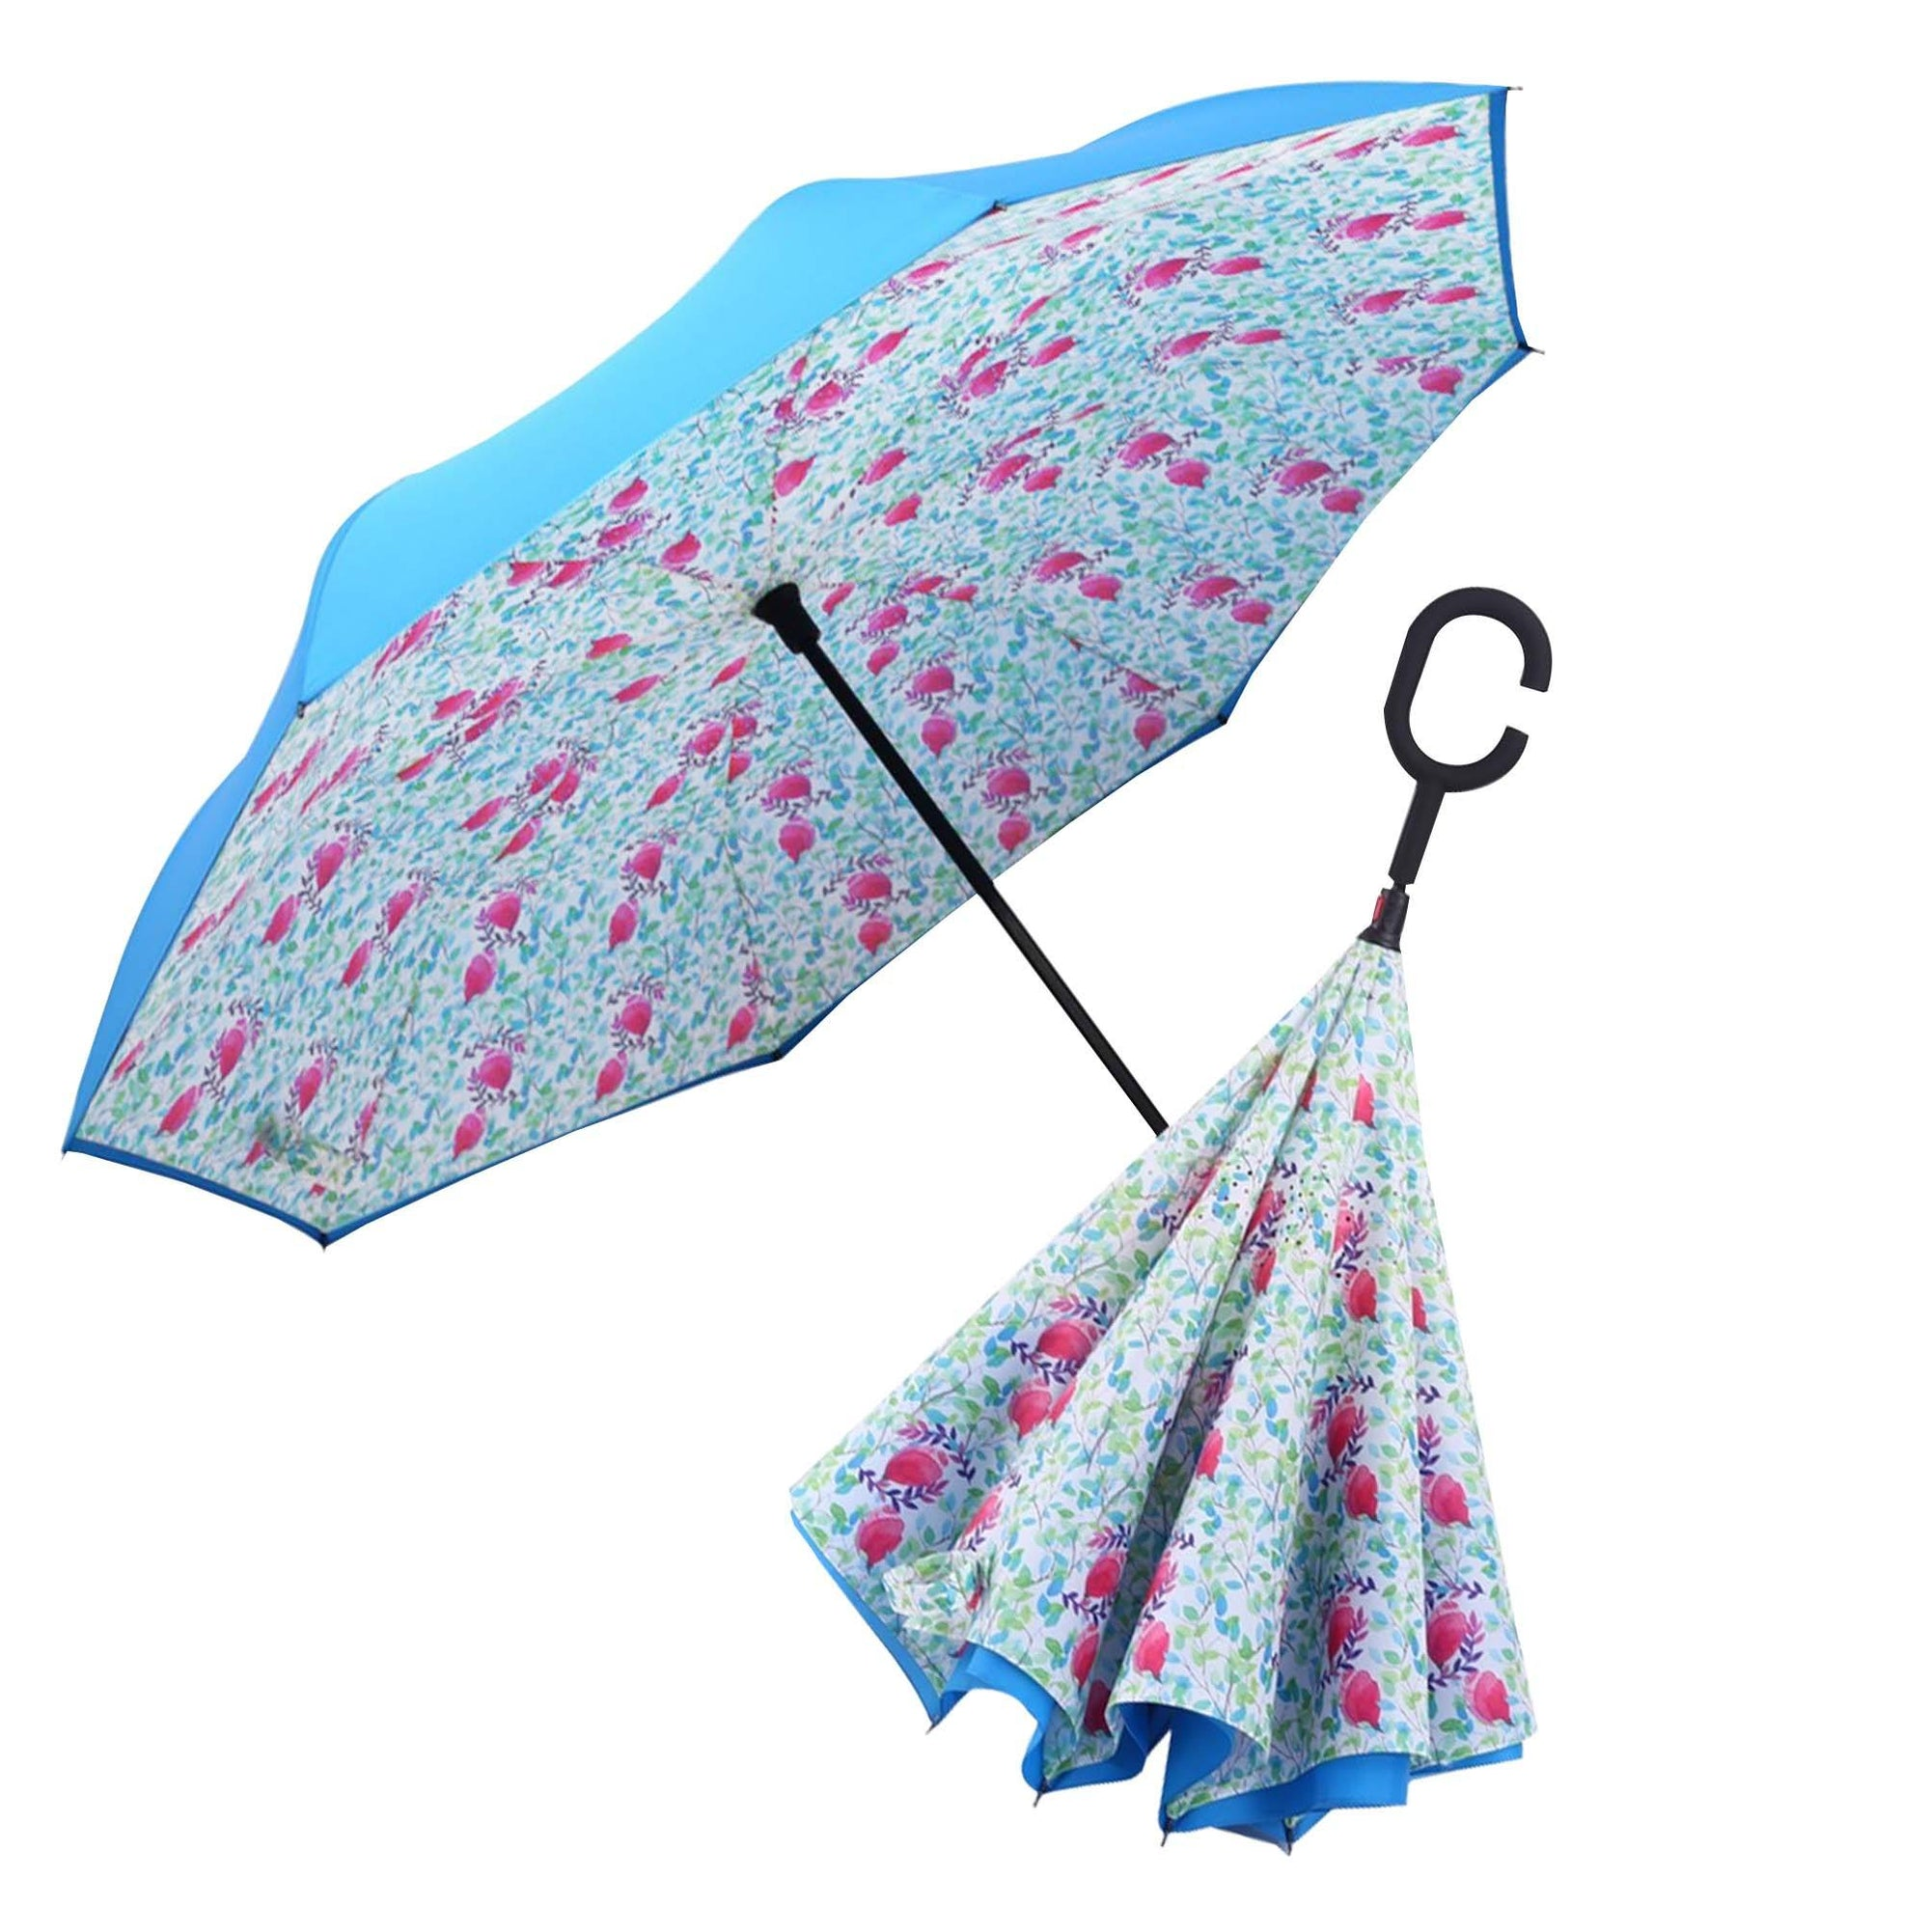 Image of a RainCaper Aqua Spring Watercolor inverted umbrella shown both open and closed. When open, the top is Aqua and the interior features the Spring Watercolor print